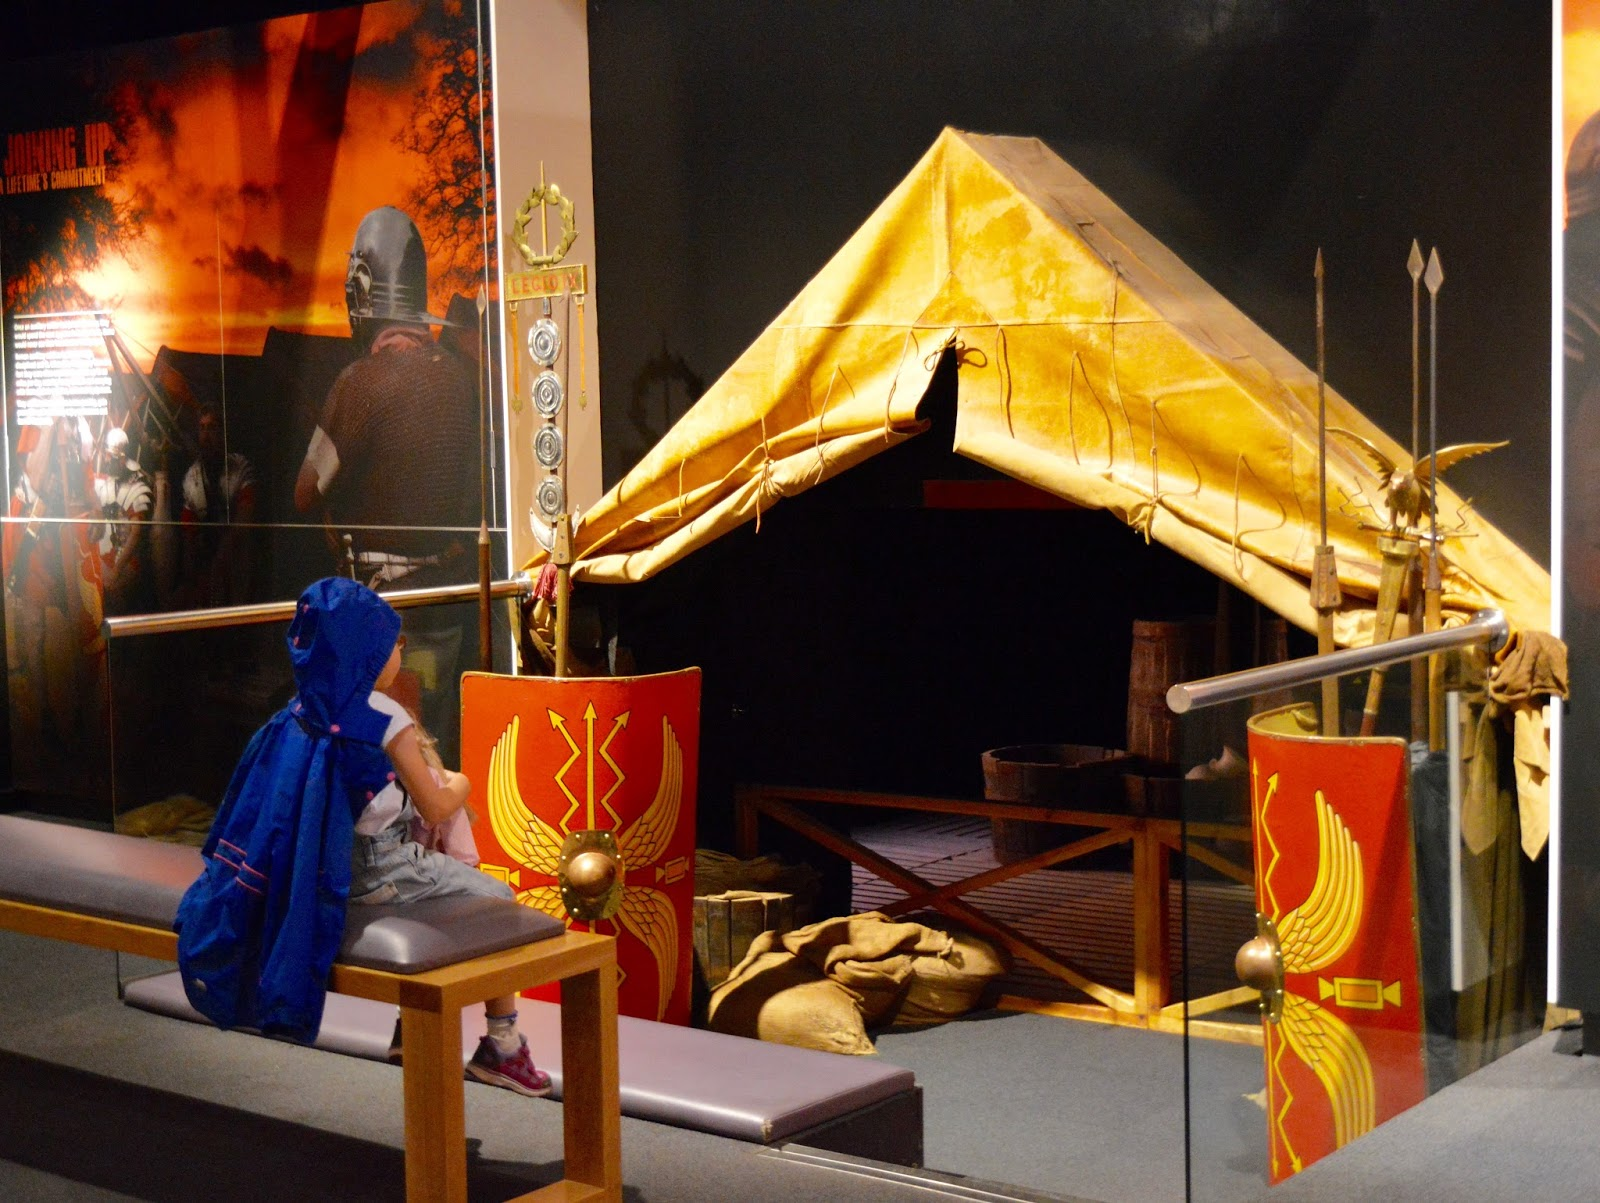 25 days out, events and things to do with kids in Northumberland National Park - Roman Army Museum